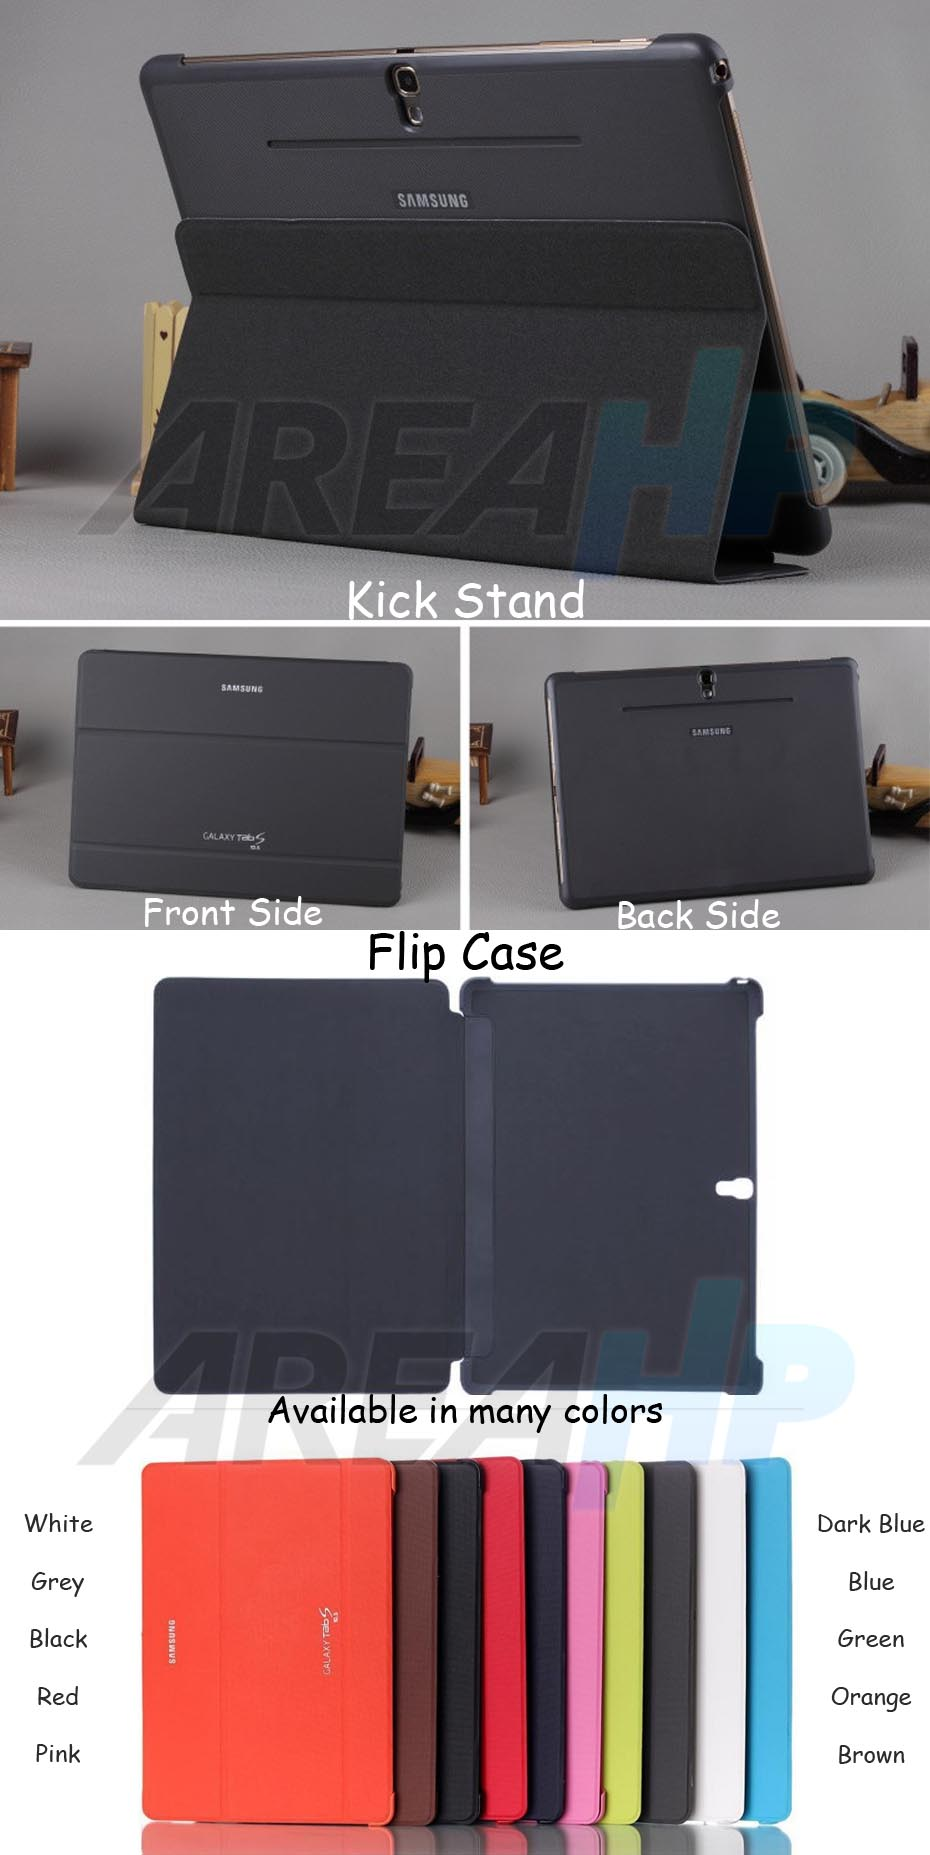 Book Cover Case for Samsung Galaxy Tab S 2 9.7 T810 Overview